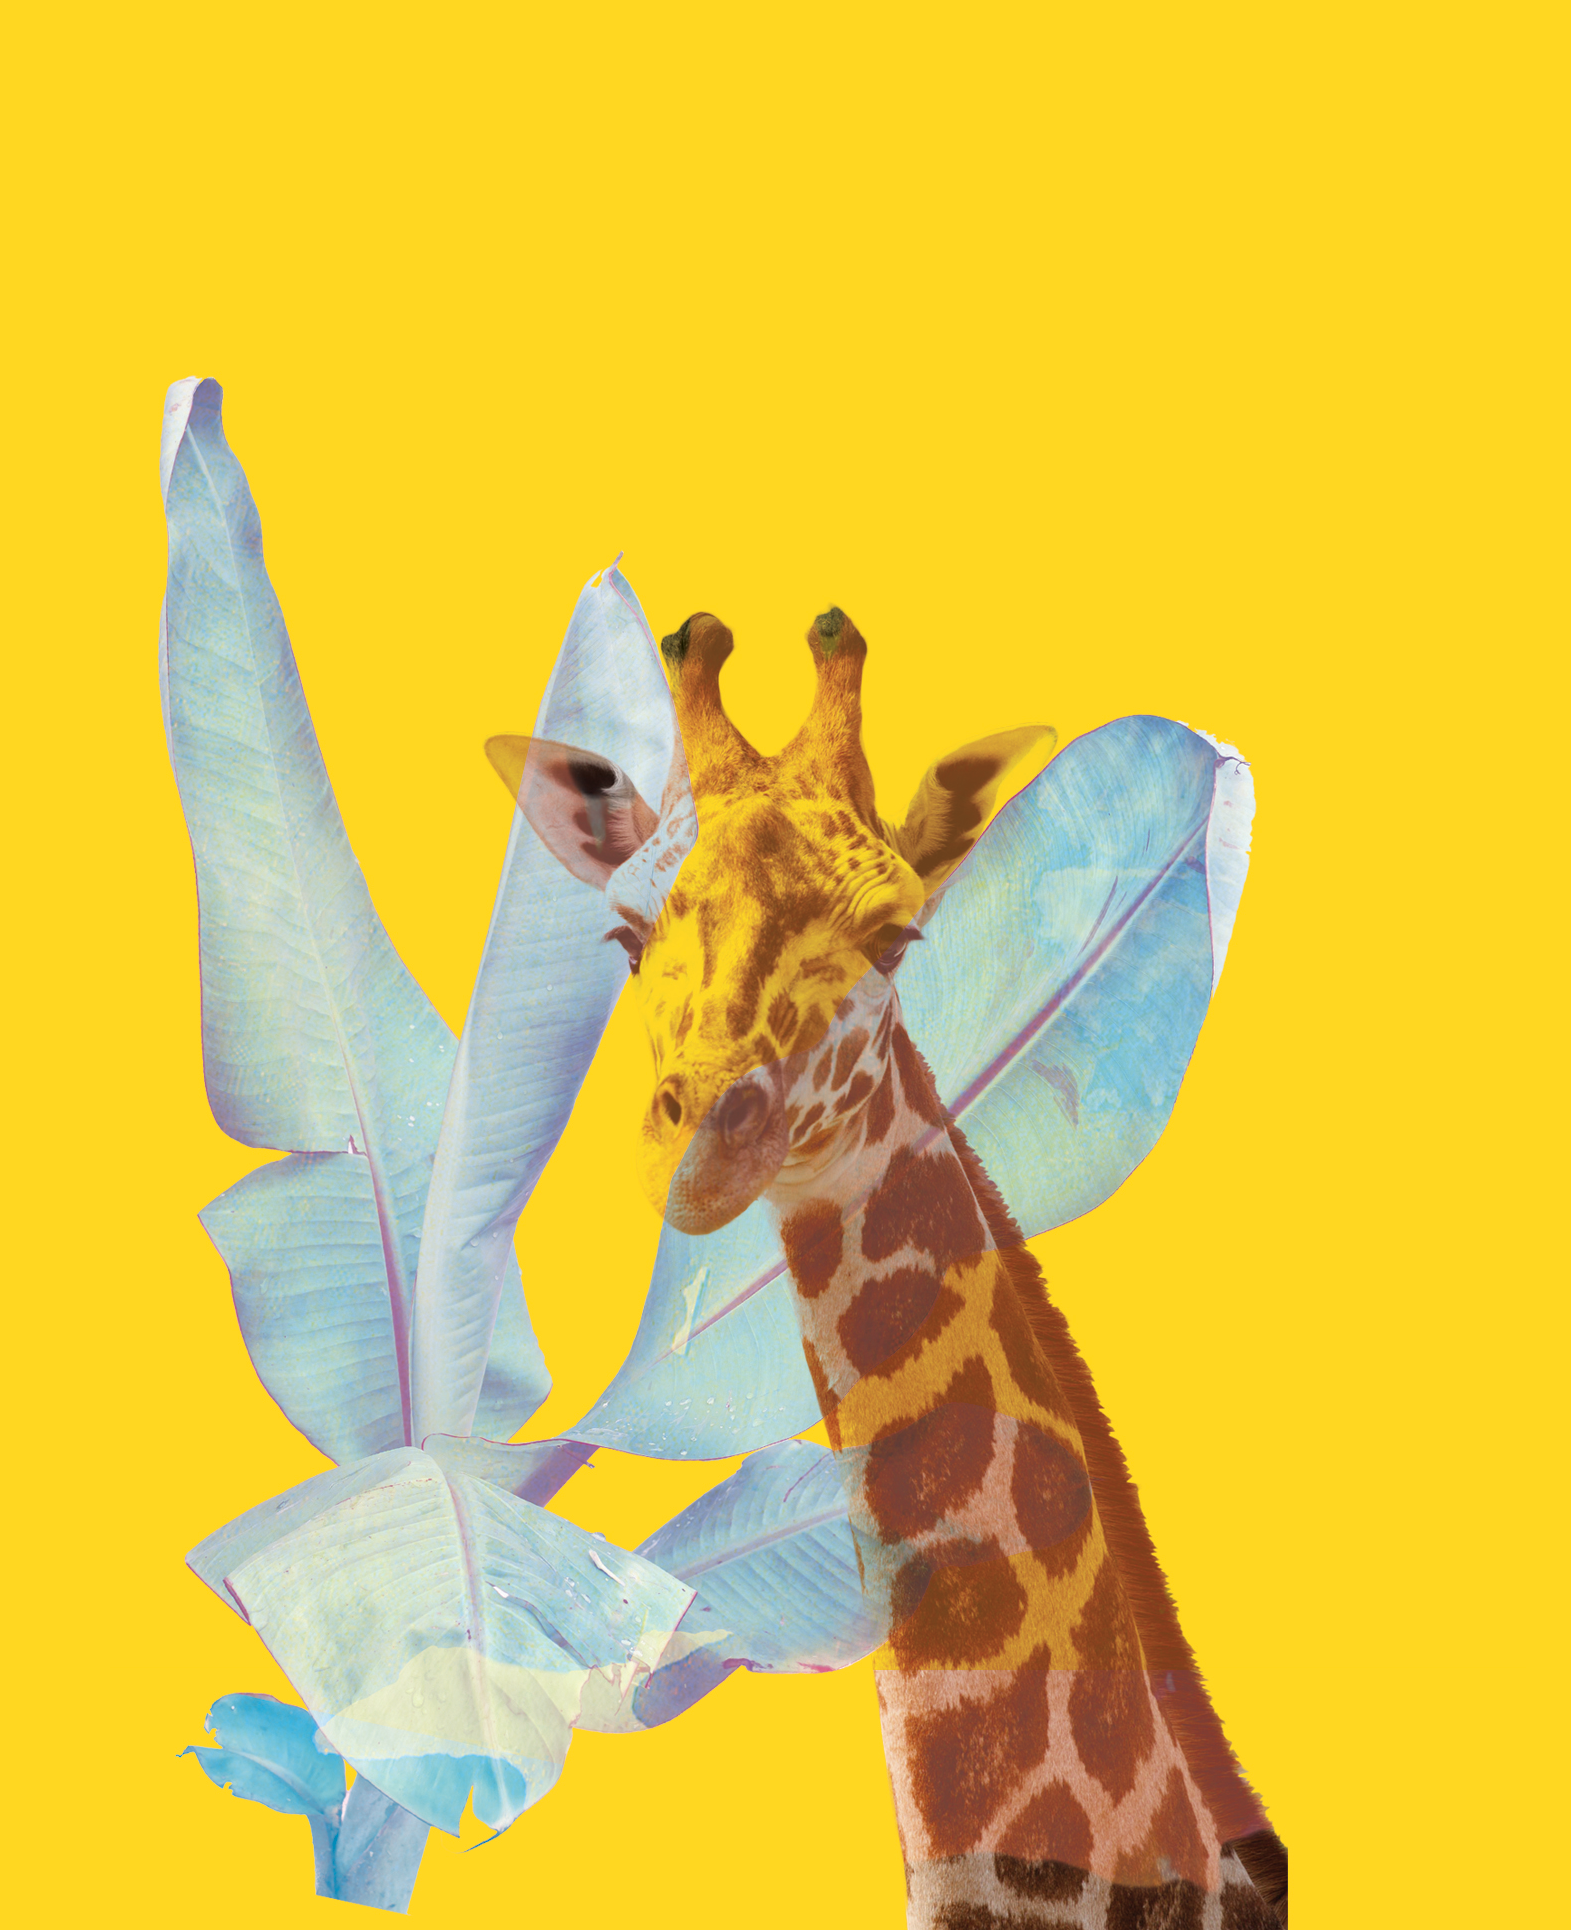 RADIANT GIRAFFE    This composition, inspired by countless visits to Nairobi's Giraffe Center and many minutes staring into big, gentle eyes, merges the curious look of a giraffe with cool-blue banana leaves onto a bold, saturated yellow background. The image recalls the warmth of sunny Nairobi and Rui's childhood home garden, dotted with banana trees.